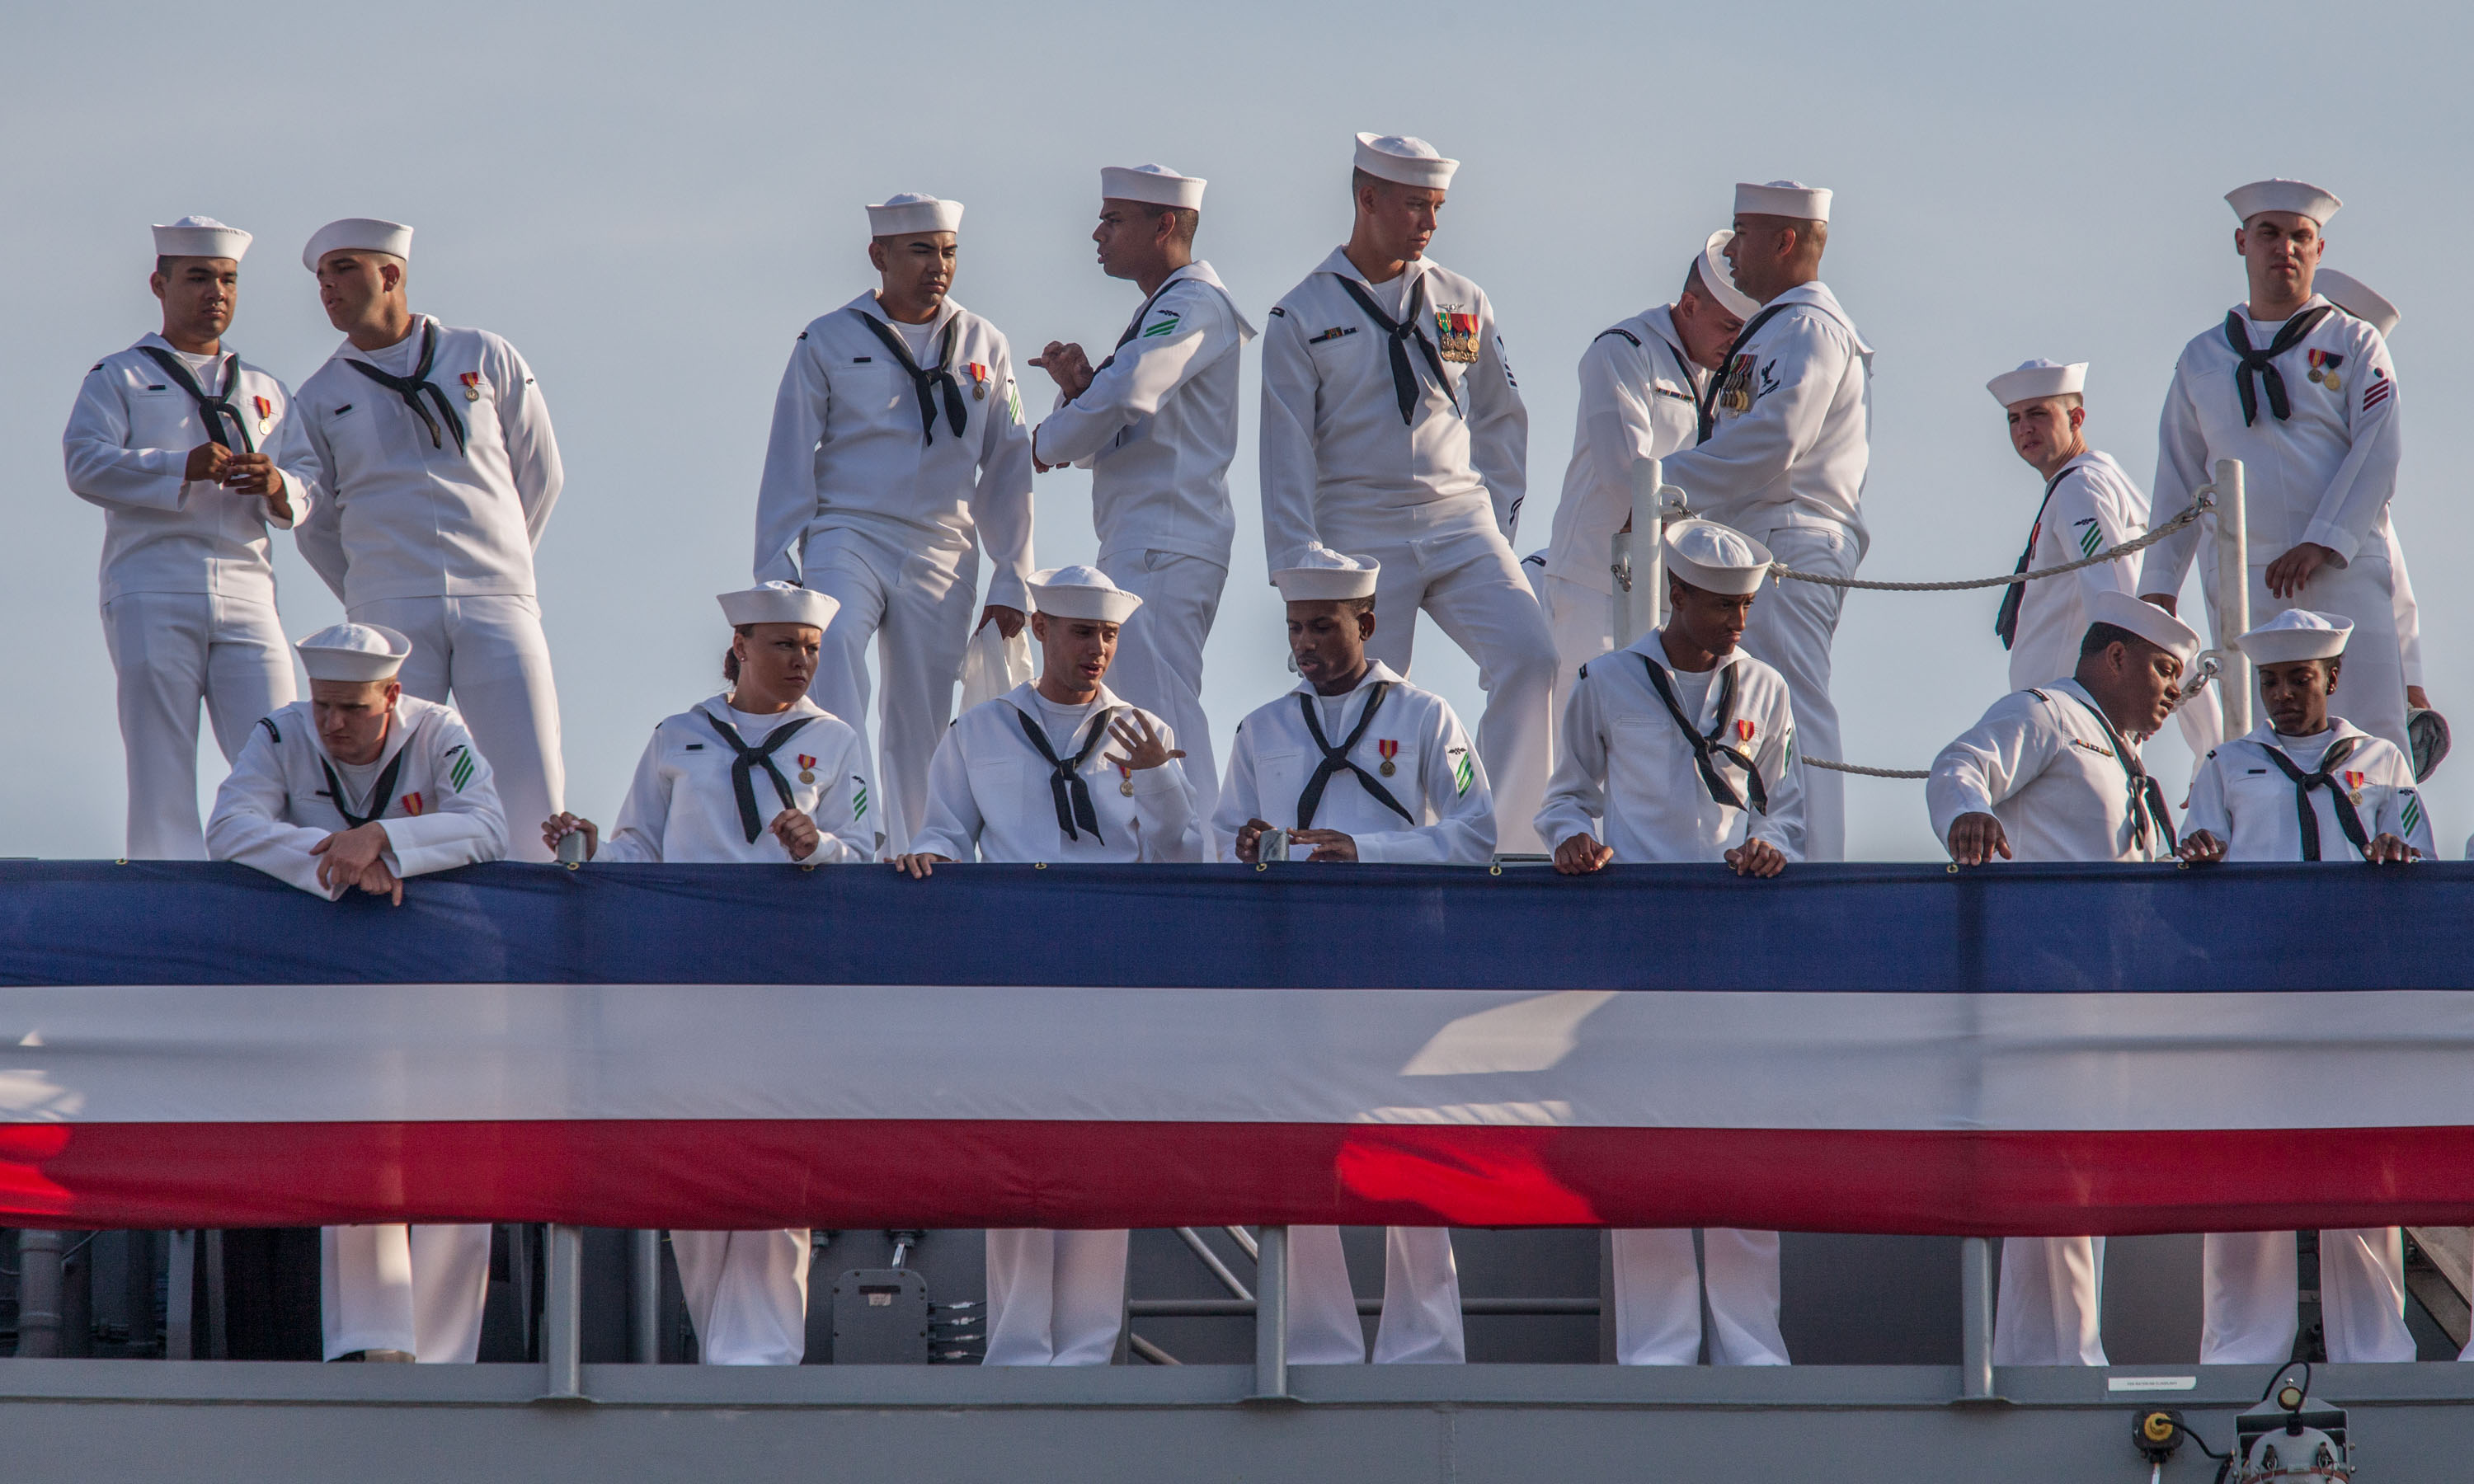 Sailors aboard the aircraft carrier Gerald R. Ford watch as the crowd gathers on pier II to watch their ship join the fleet today. The Ford is the first of a new class of carriers and won't be fully ready to deploy for another five years.